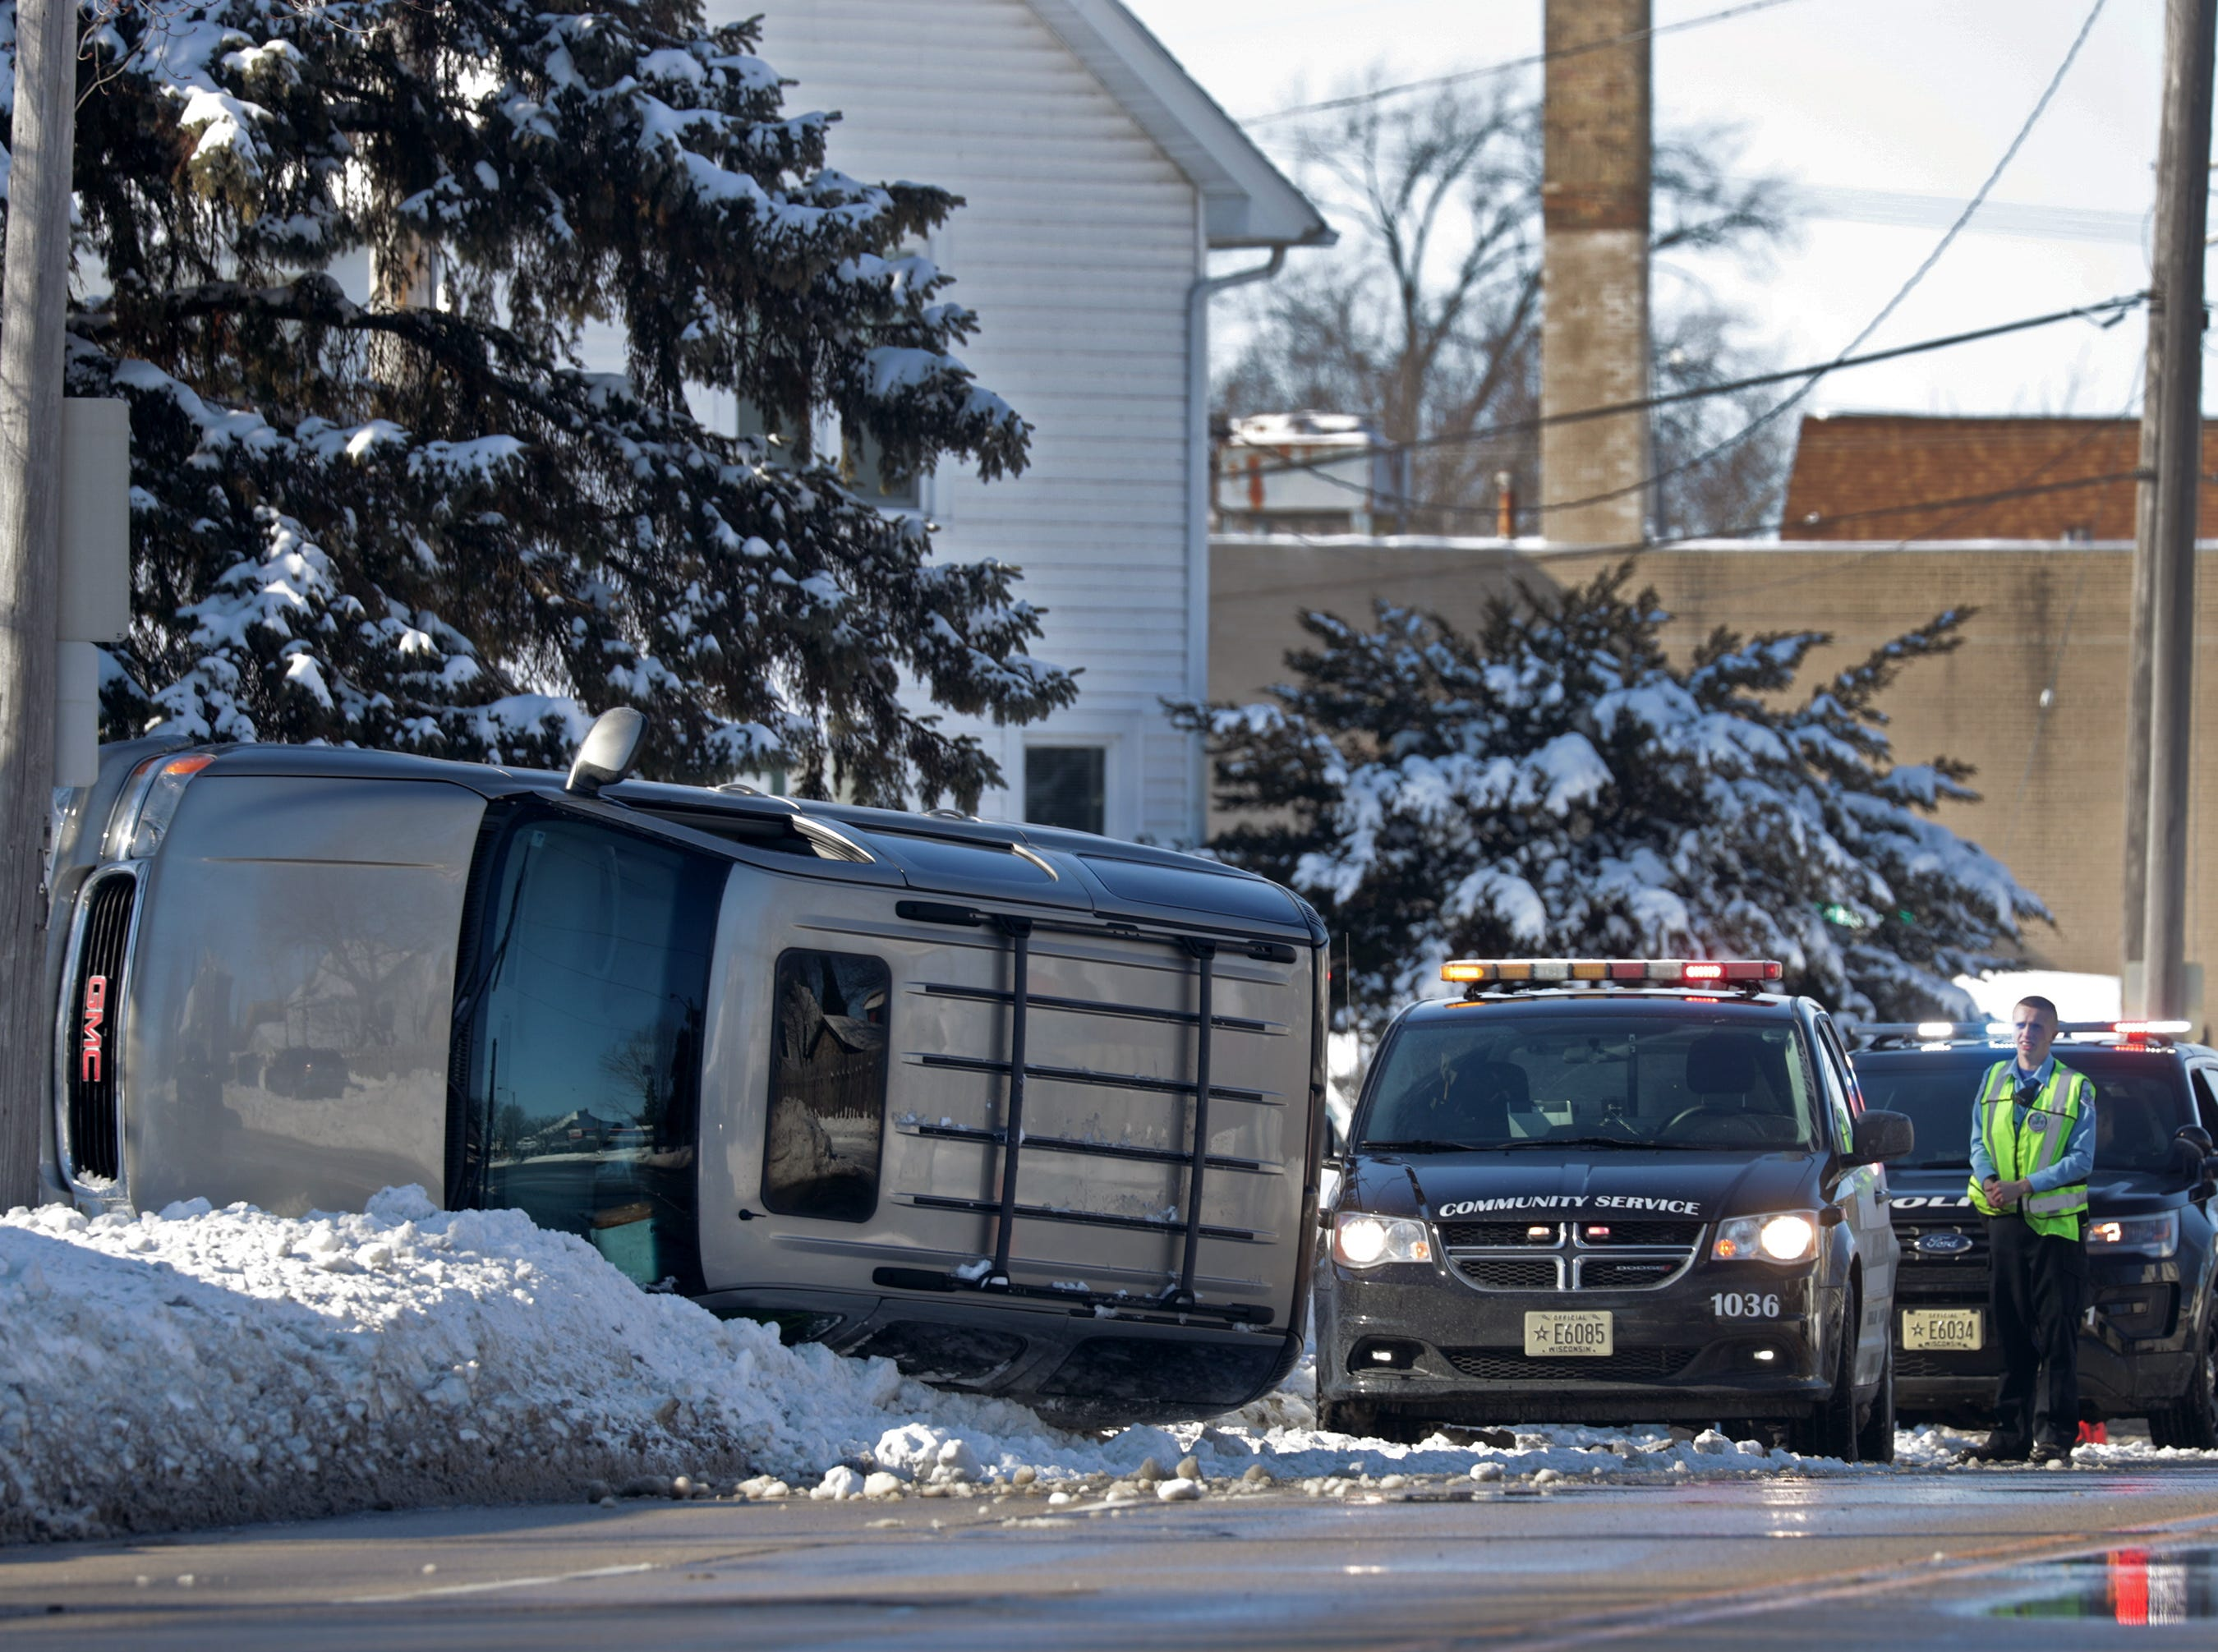 A single vehicle a crash on S. Badger St. on Wednesday, February 13, 2019, in Appleton, Wis. Wm. Glasheen/USA TODAY NETWORK-Wisconsin.